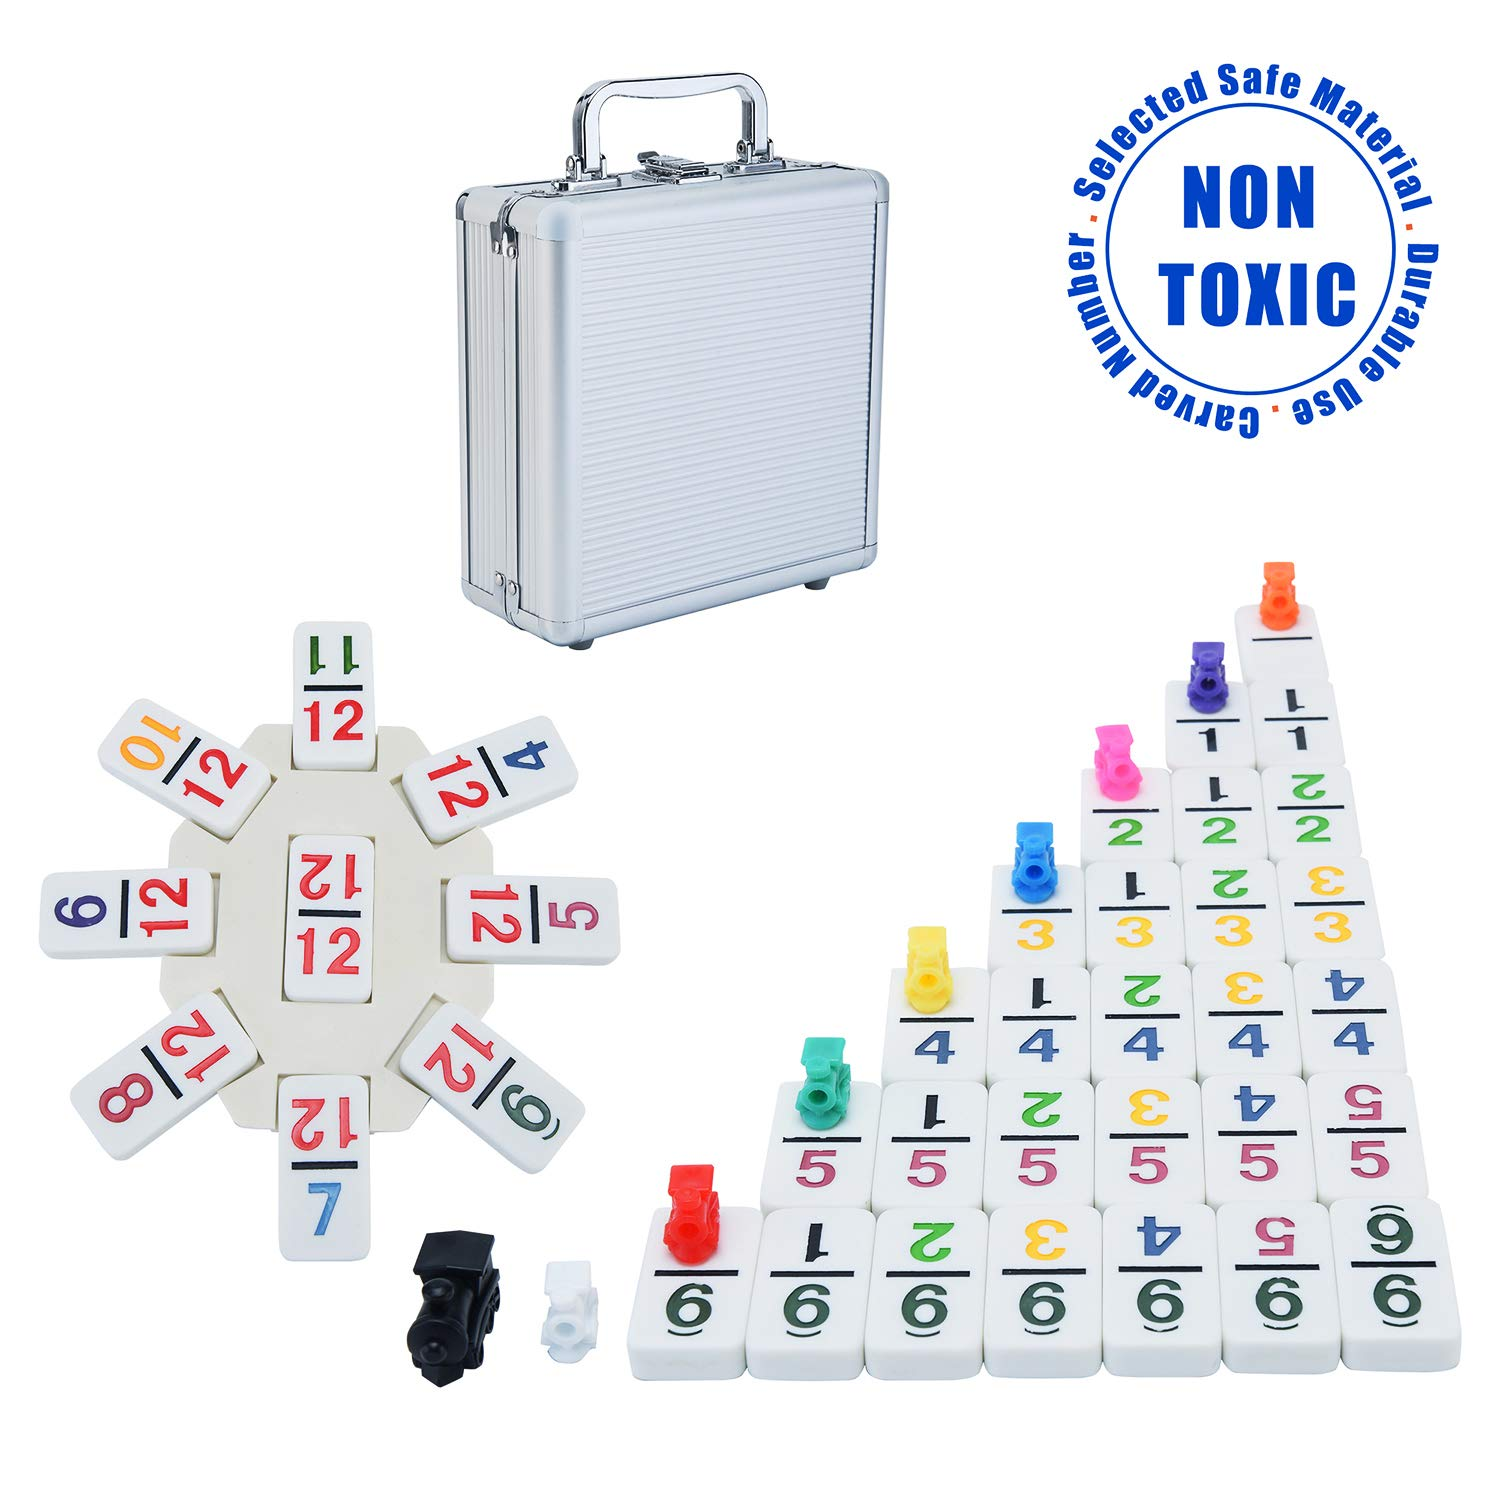 Ksamor Dominoes Set - Mexican Train Dominoes with Numbers, Colored Double 12 Dominoes Set Well Painted with Aluminum Case, 91 Tiles for Kids and Families